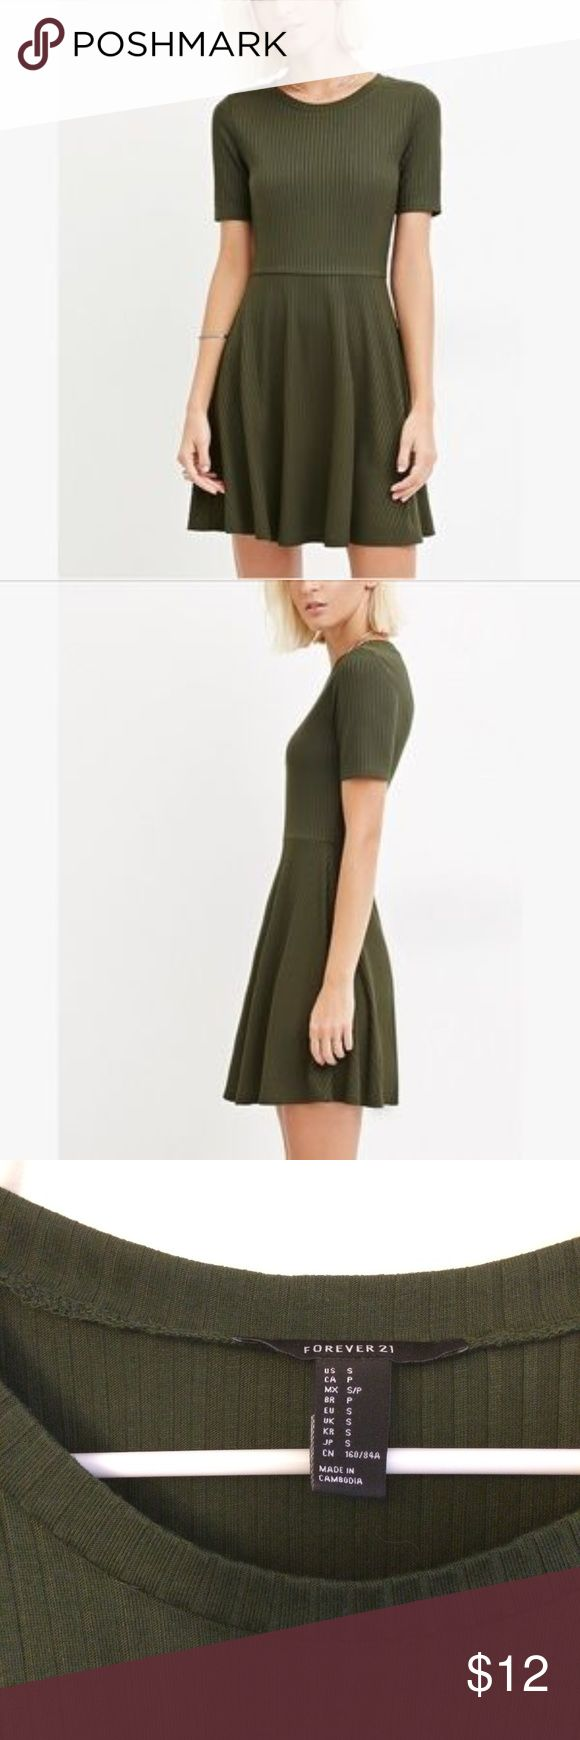 Forever 21 olive ribbed skater dress Forever 21 olive green ribbed skater dress!  Stops about mid thigh. Size S, worn literally once for only about an hour- basically brand new!! Forever 21 Dresses